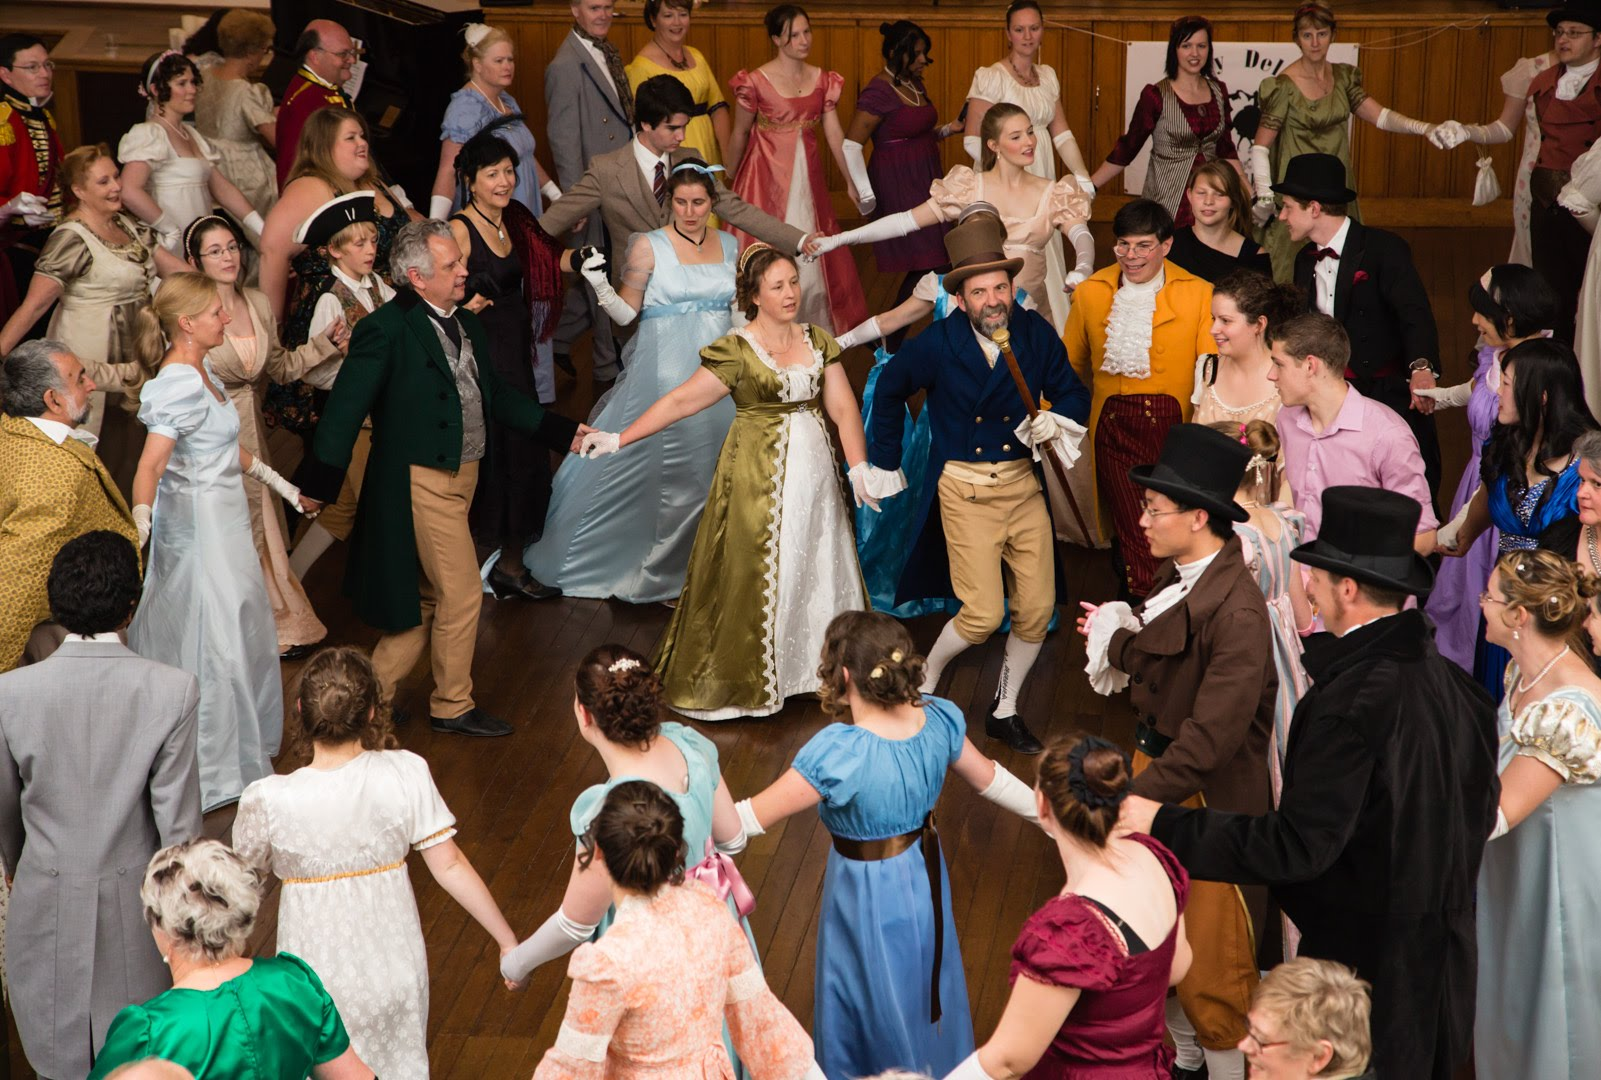 EDHDA at Jane Austen Festival Australia leading dancing at the Jane Austen Regency Ball